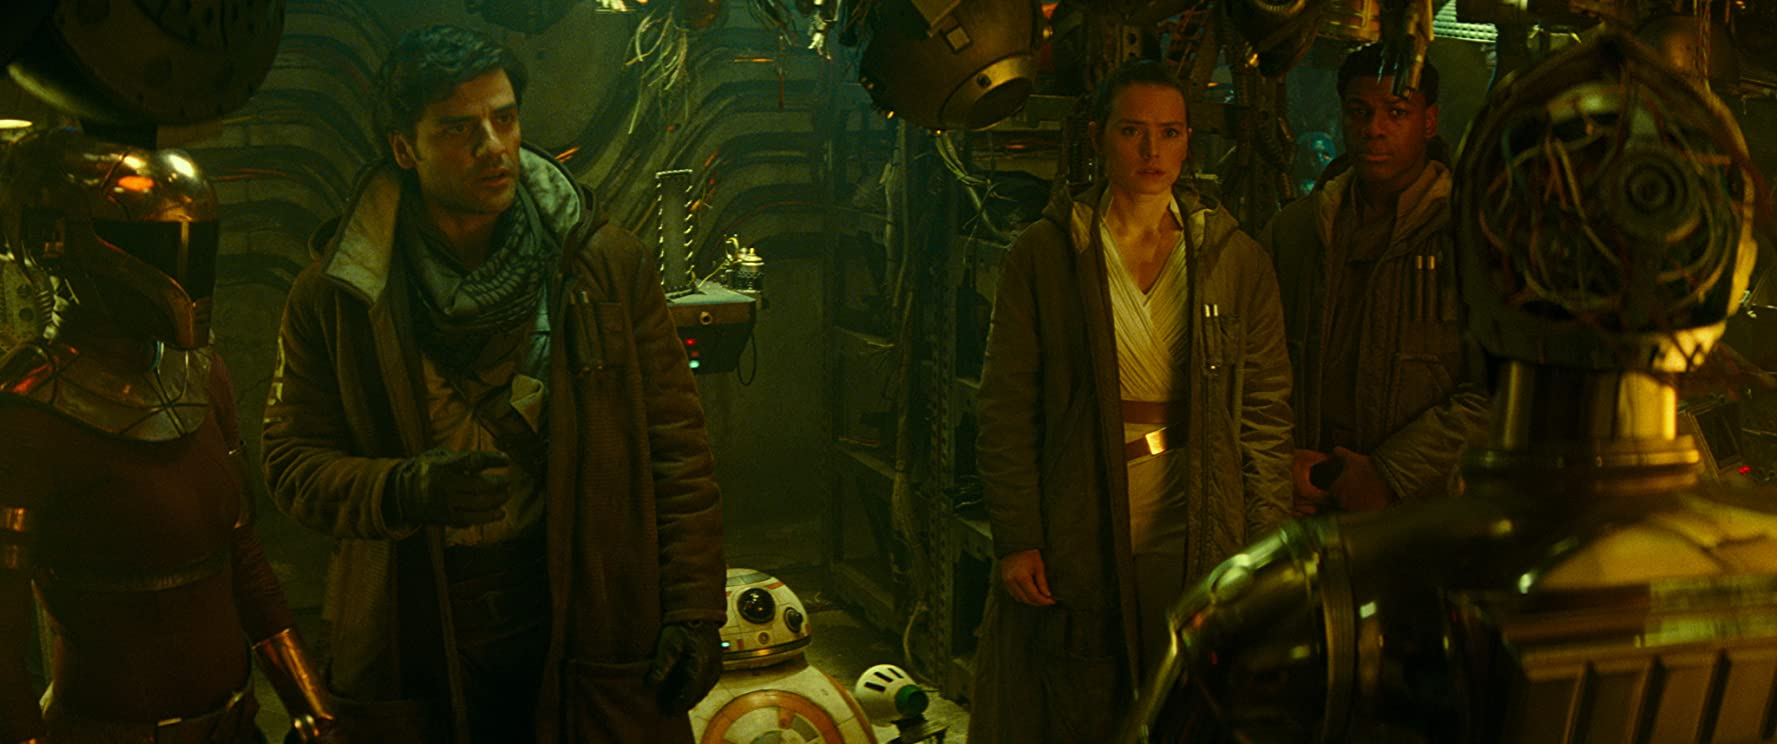 Anthony Daniels, Oscar Isaac, John Boyega, and Daisy Ridley in Star Wars: Episode IX - The Rise of Skywalker (2019)